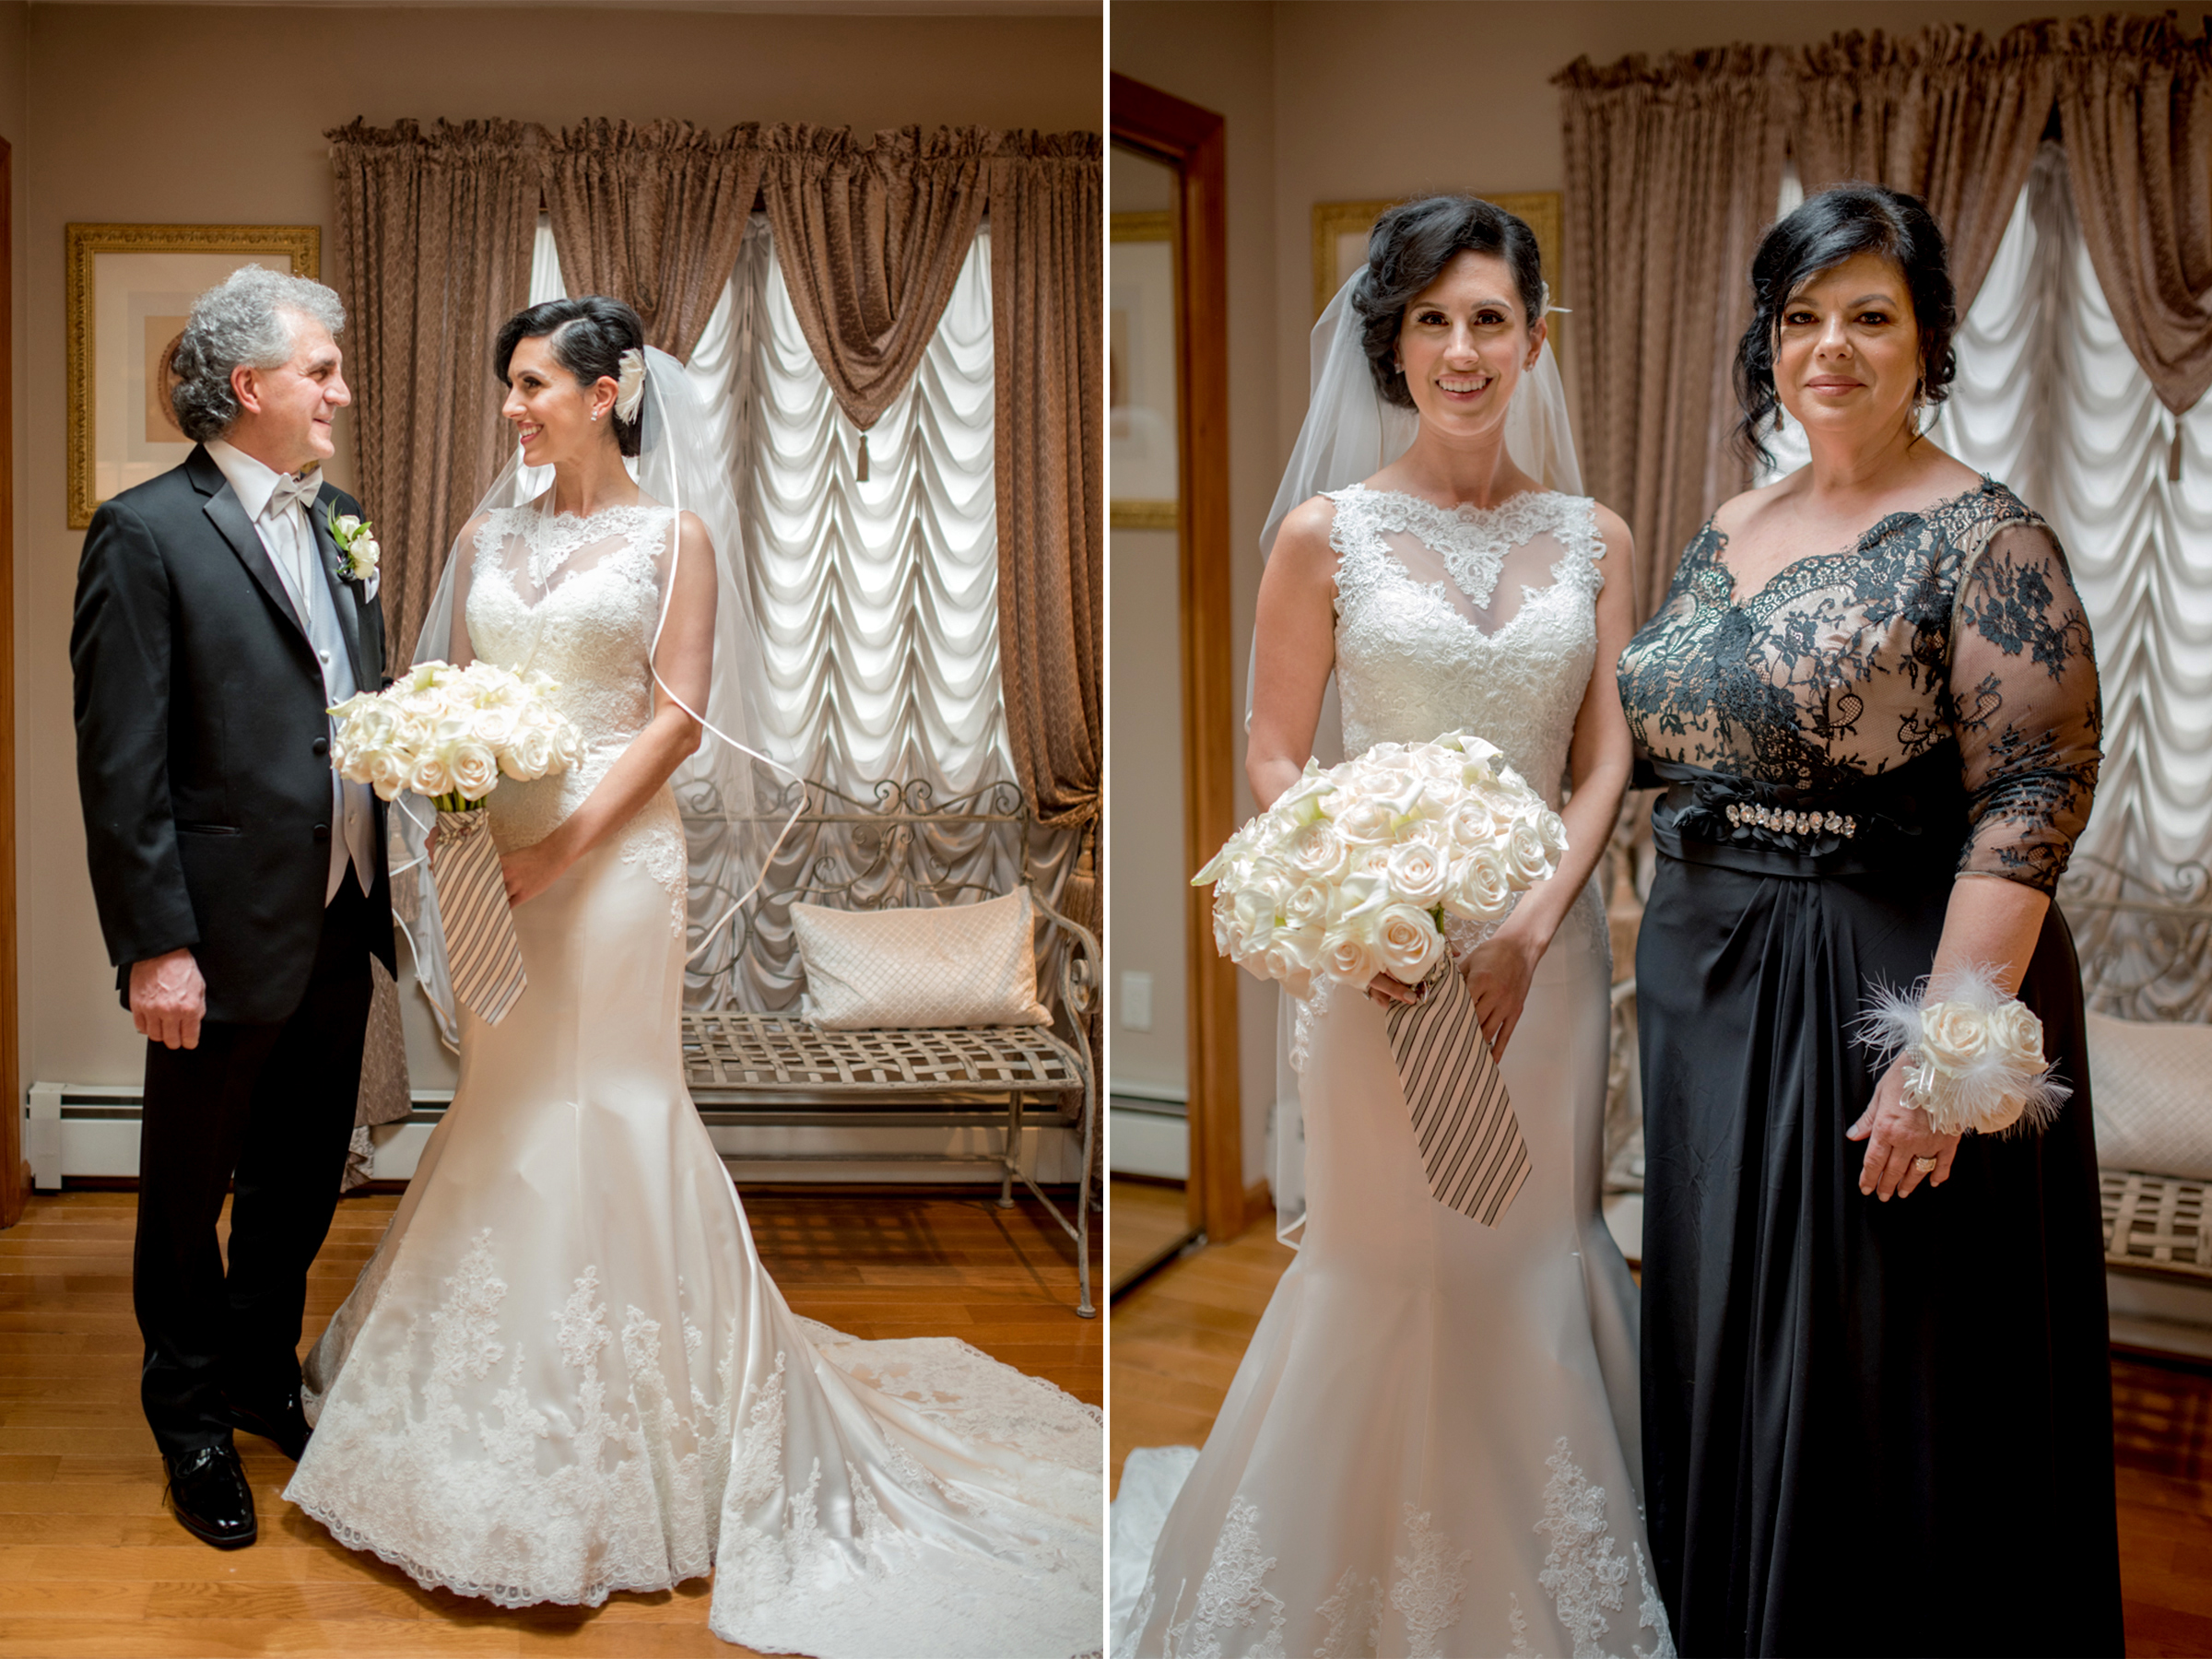 Michelle+Joe- Bride with Parents - Ryland Inn Winter Wedding - New Jersey - Olivia Christina Photo.jpg